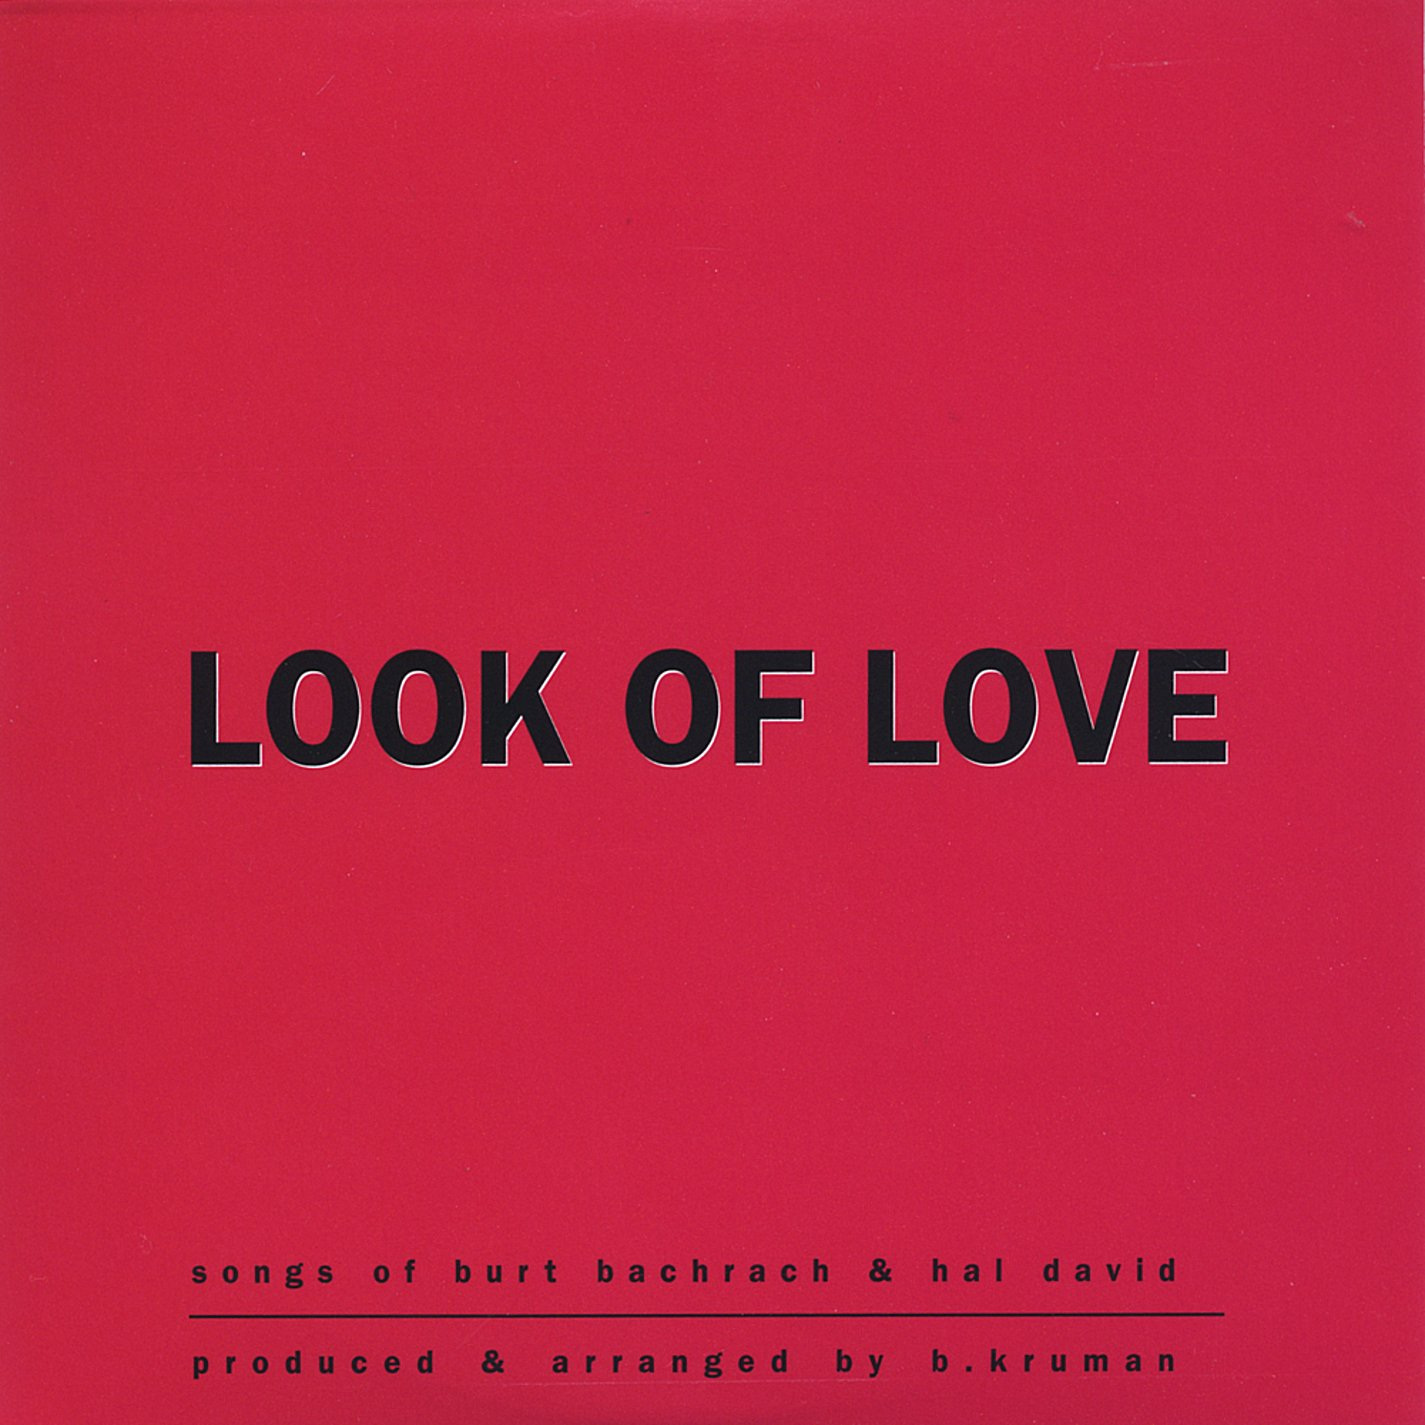 Look of Love by CD Baby